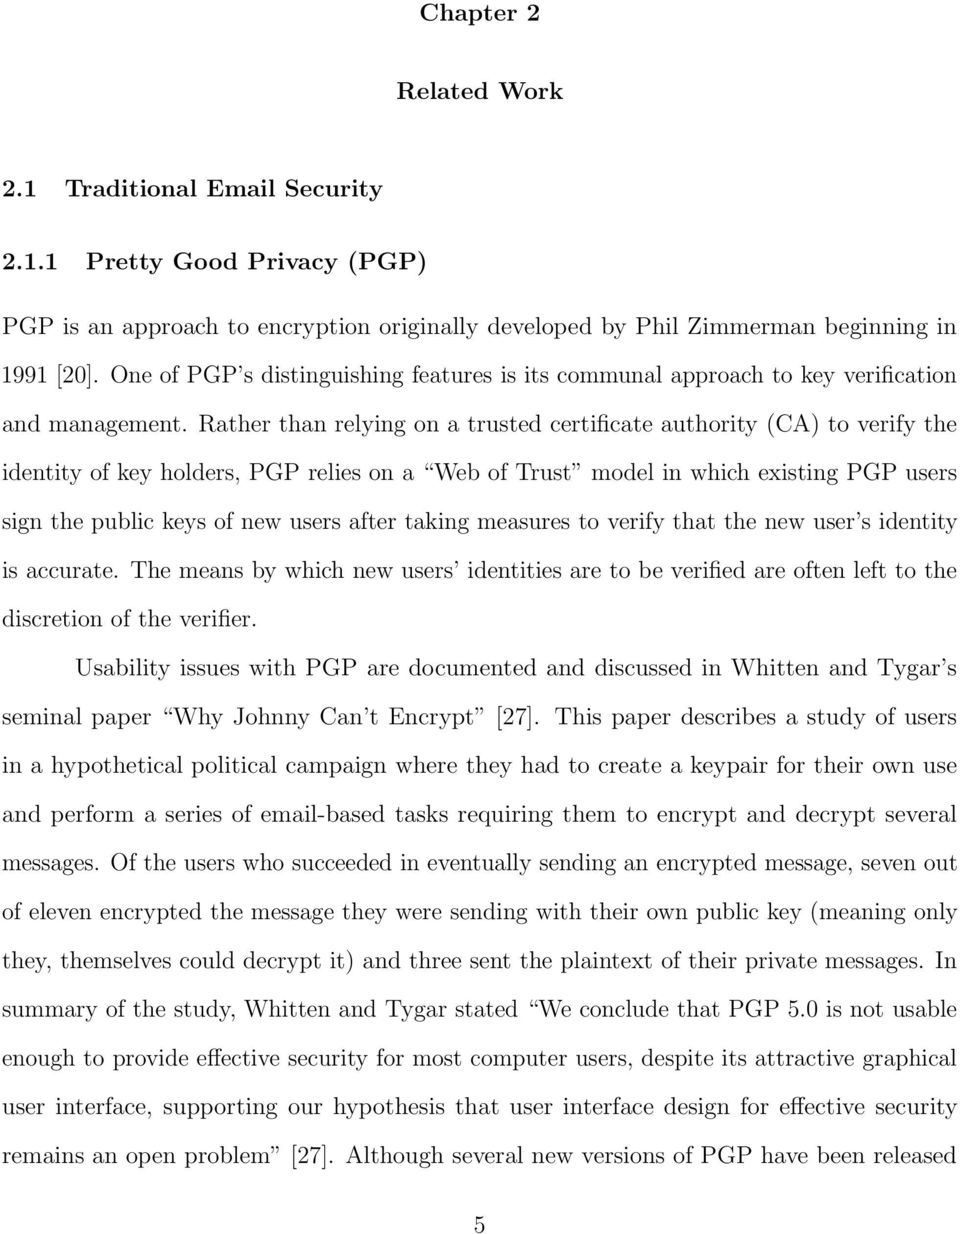 Rather than relying on a trusted certificate authority (CA) to verify the identity of key holders, PGP relies on a Web of Trust model in which existing PGP users sign the public keys of new users